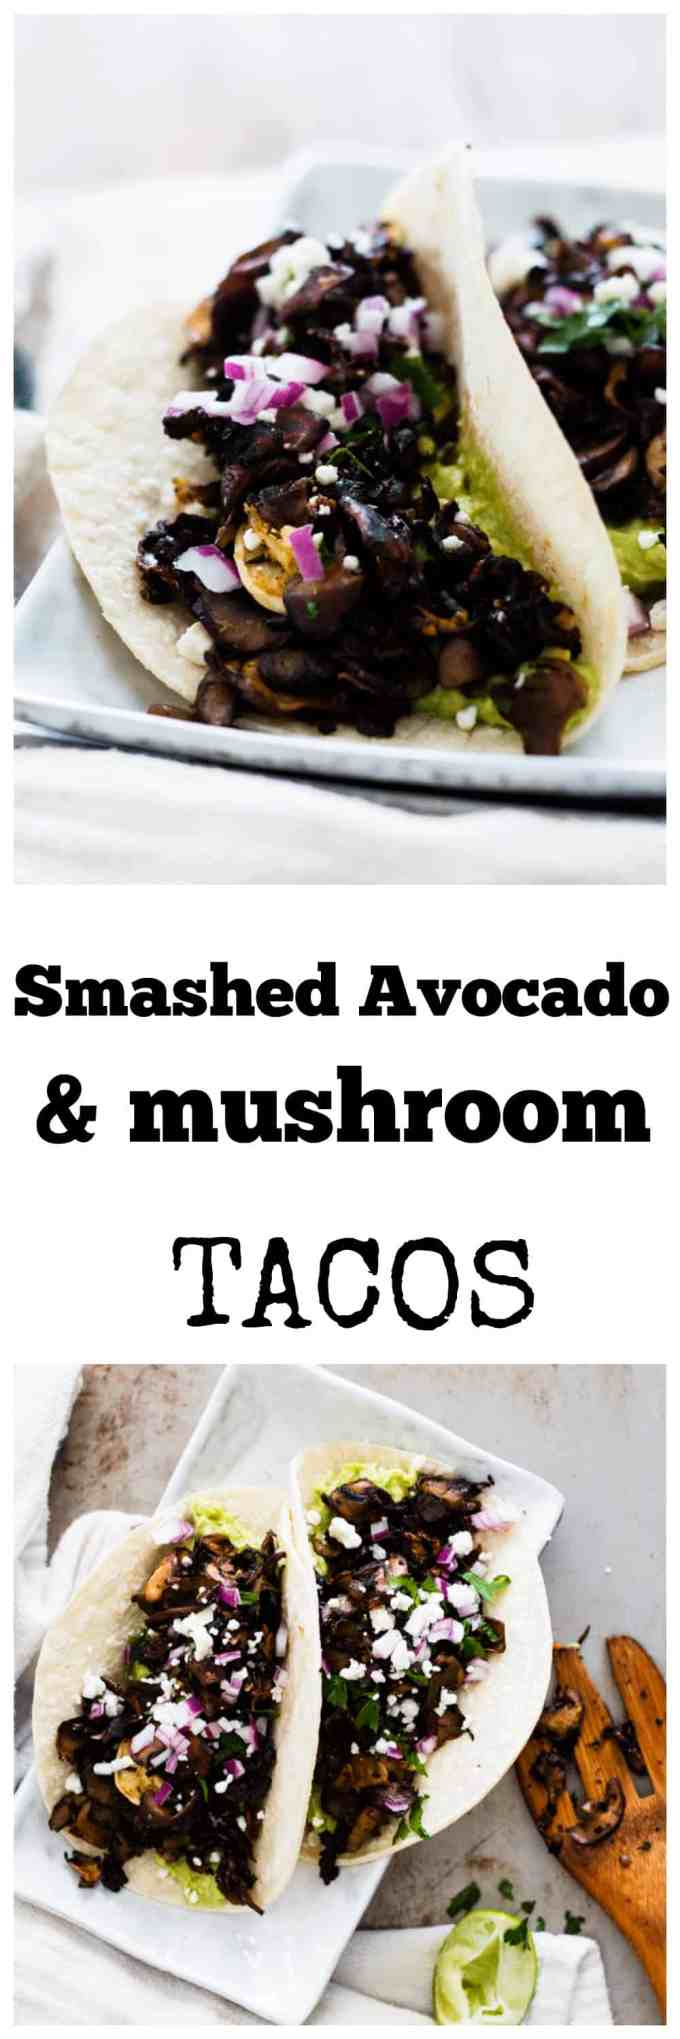 Mushroom and Smashed Avocado Tacos are going to change your Taco Night forever! Super thin slices of marinated mushrooms combine with creamy avocado to make for a taste sensation that will have you coming back time and time again. #tacos #tacotuesday #vegetarian #mushrooms